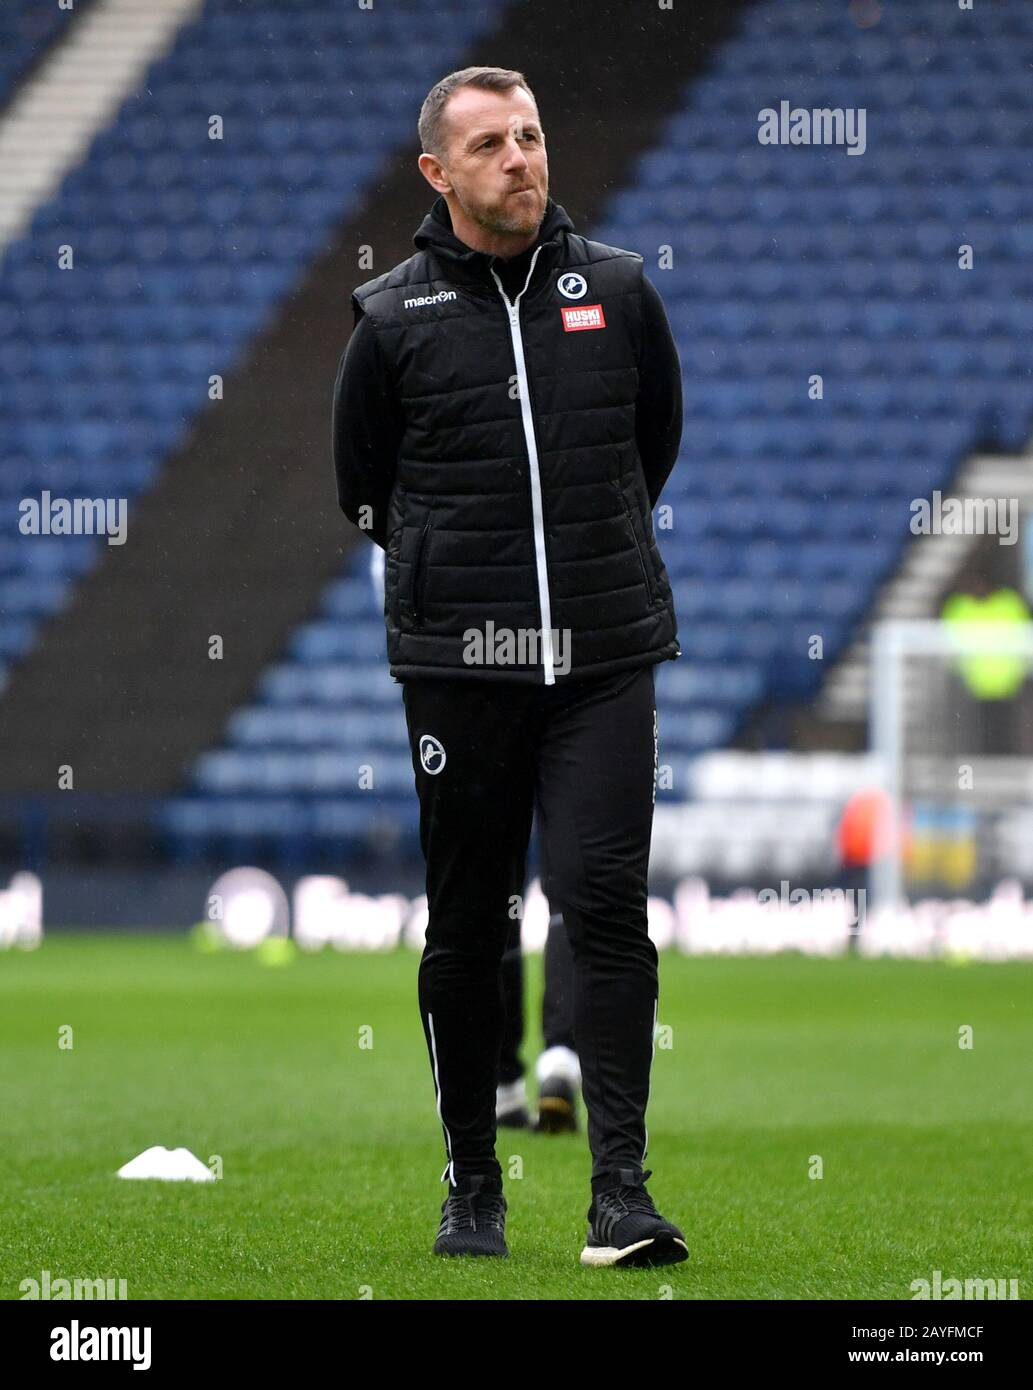 Millwall manager betting odds best 60 second binary options brokers